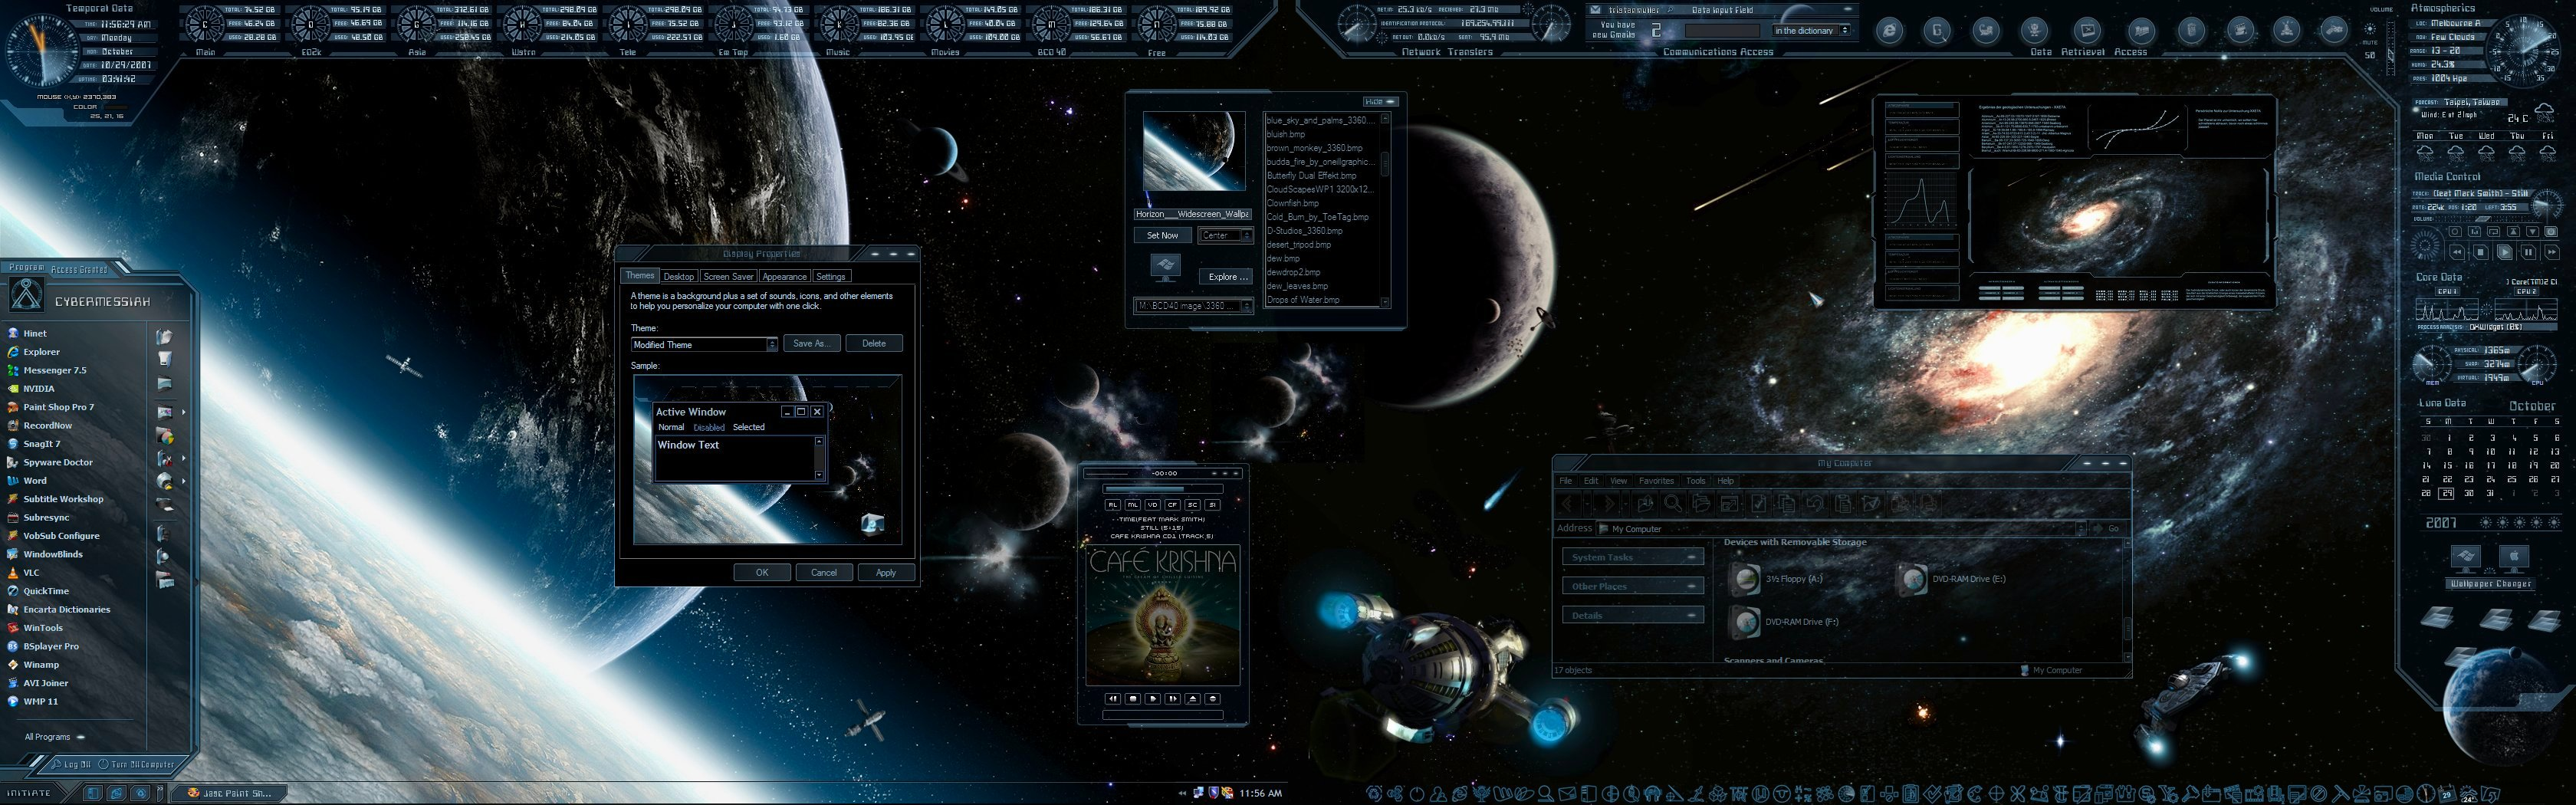 Stargate Atlantis Project